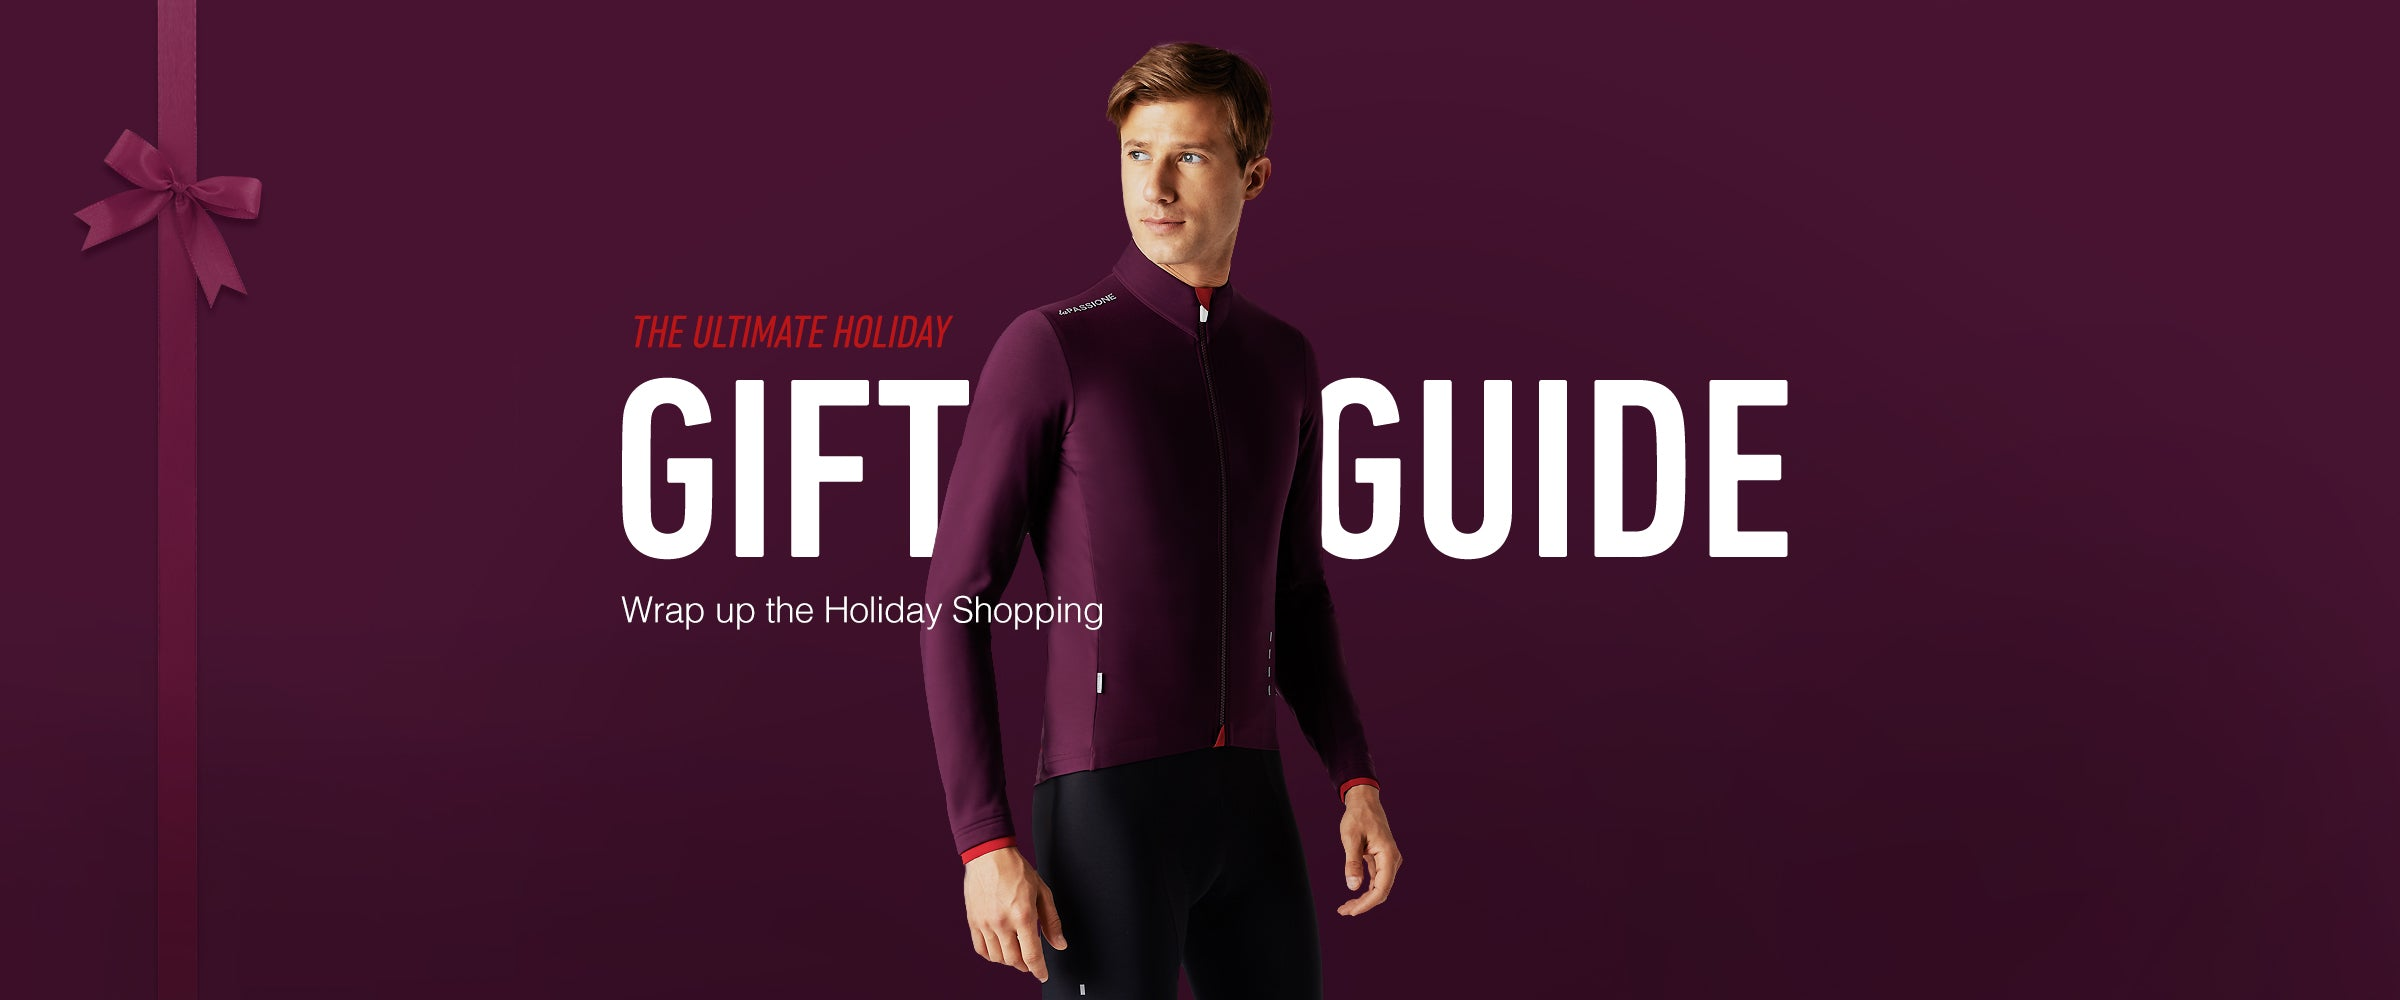 The ultimate holiday. Gift guide